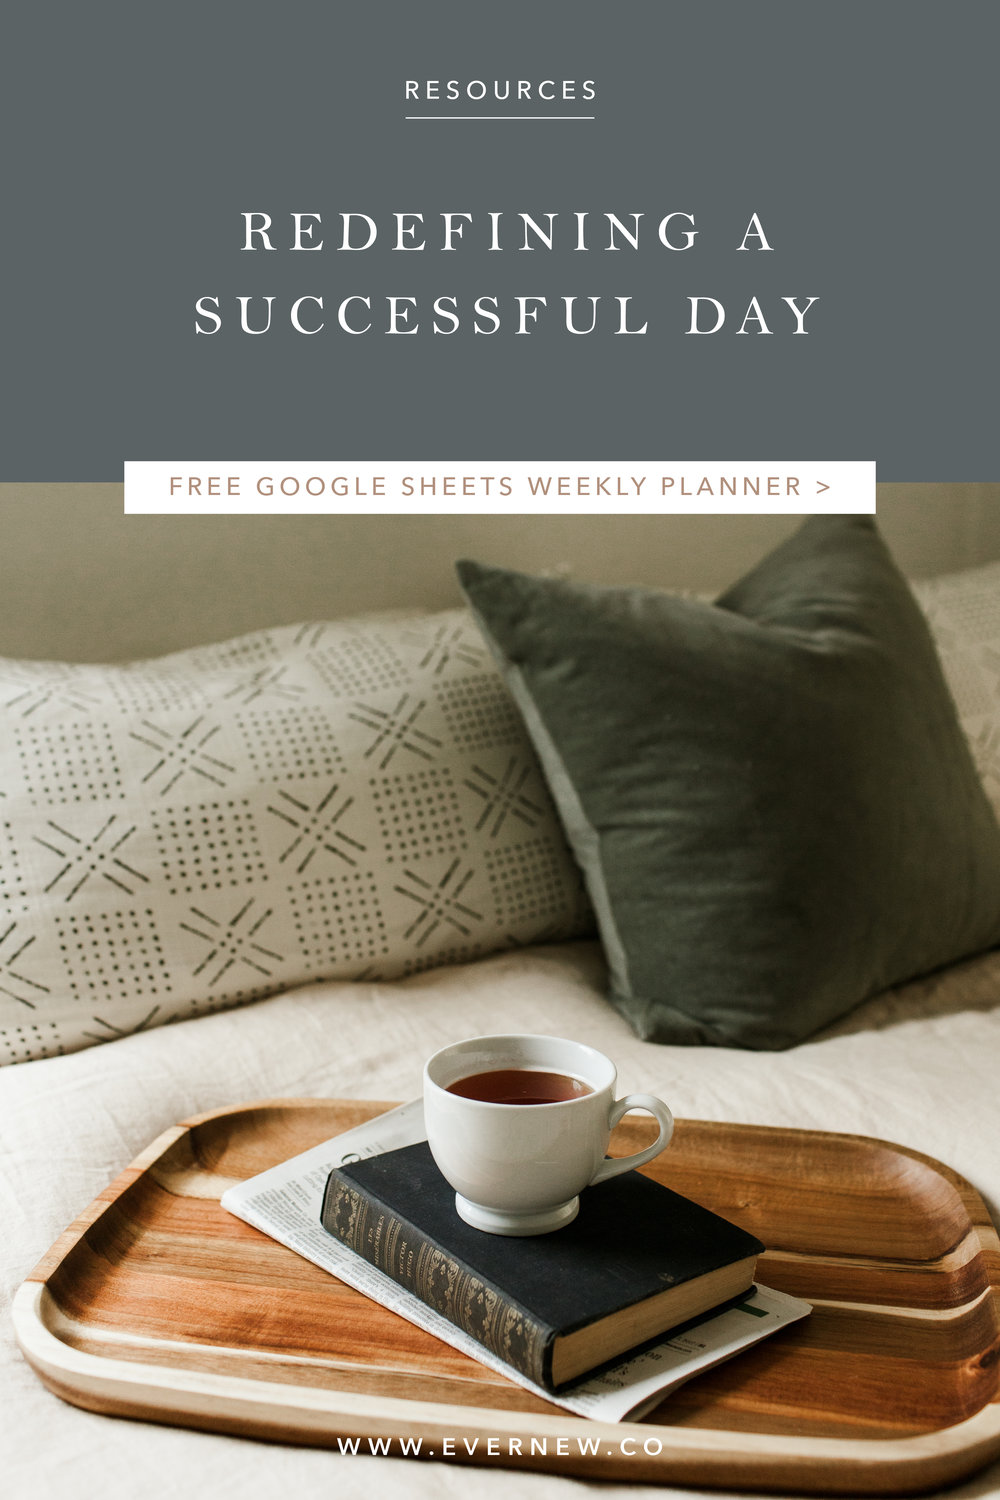 Evernew Resources: Redefining a Successful Day (Free Google Sheets Weekly Planner)